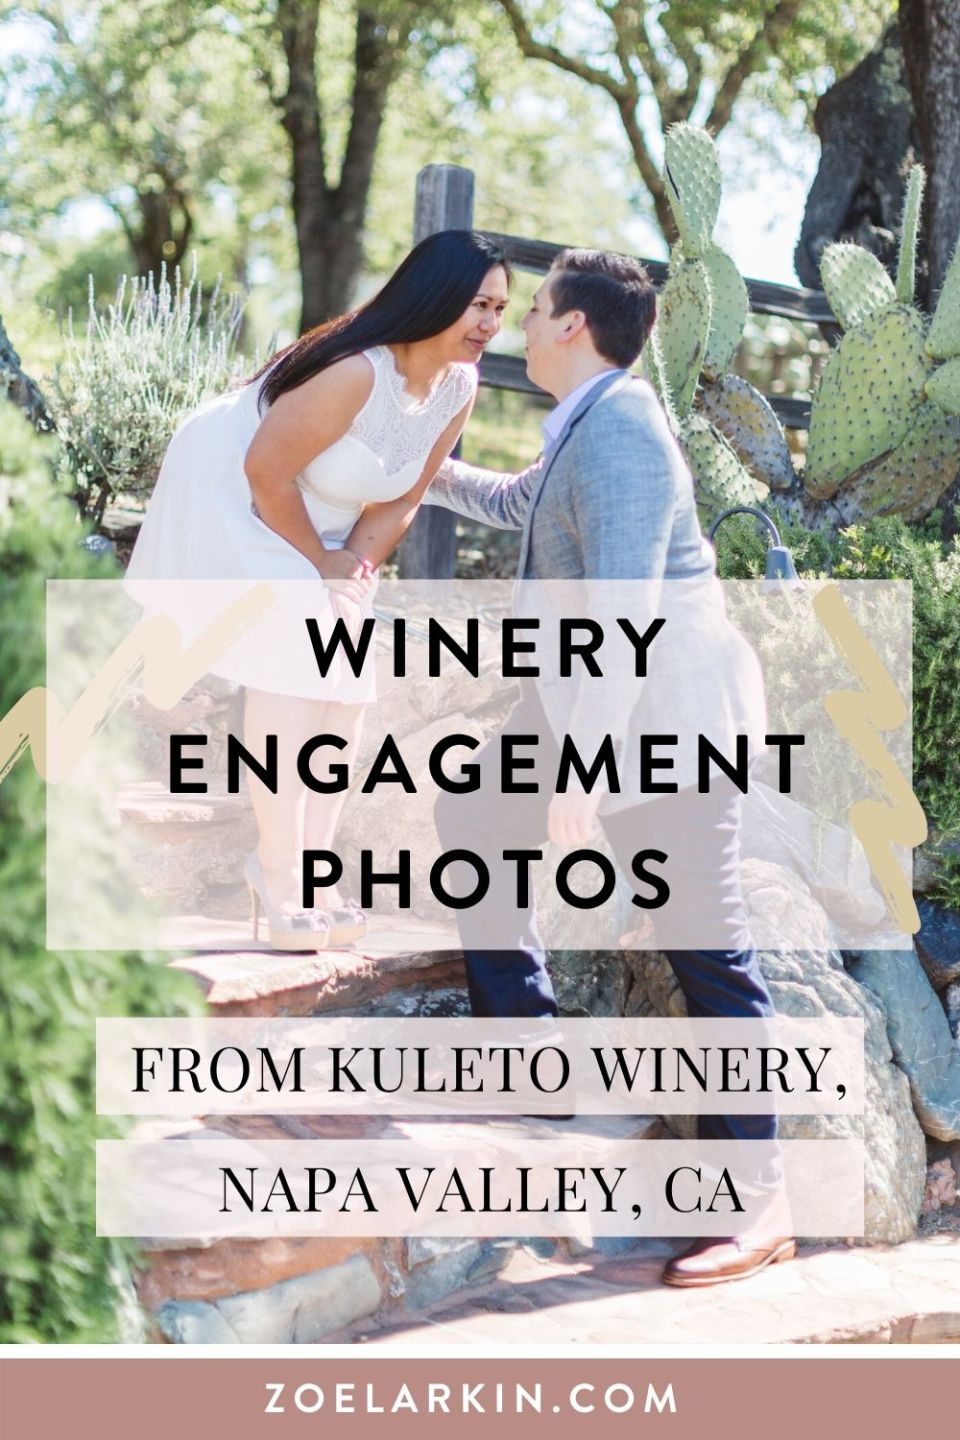 Inspiration for the perfect California wine country engagement with elegance, style and a large dash of wine ;) This sweet engagement shoot was set in the pretty vines of a private estate winery tucked away in the Napa Valley of Northern California. Boasting acres of vines looking out on the valley, this shoot had all the fun, refined elegance and wine you could wish for. Oh, and a snake!  🐍 #napawinery #engagementphotos #gettingmarried #bayareaengagement #engaged | by Zoe Larkin Photography